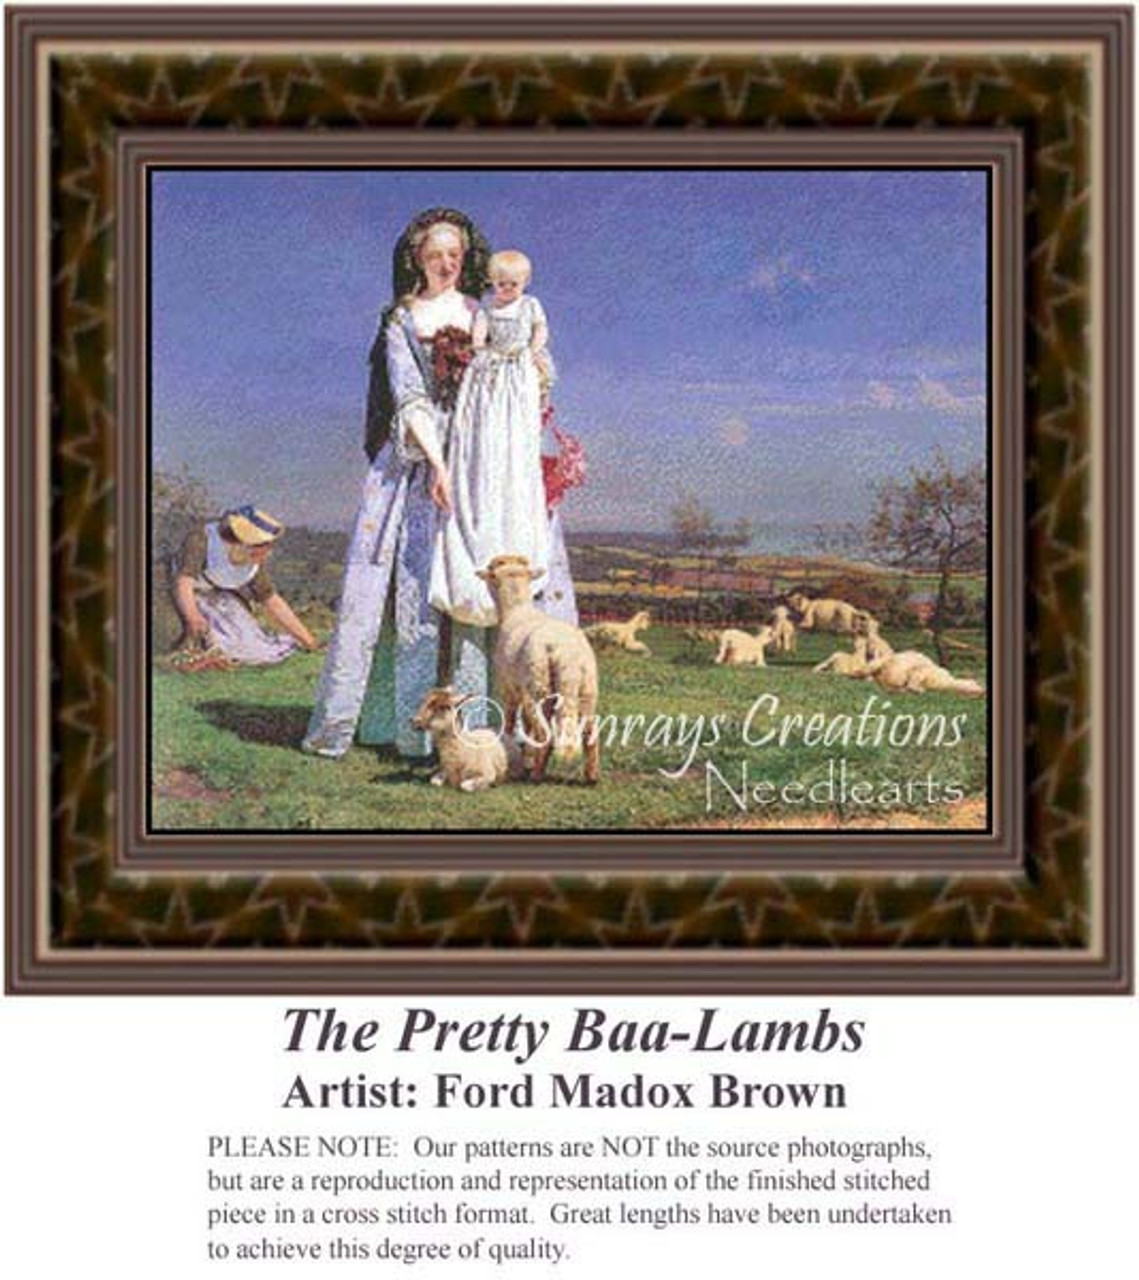 The Pretty Baa Lambs Re 1022 Sunrays Creations